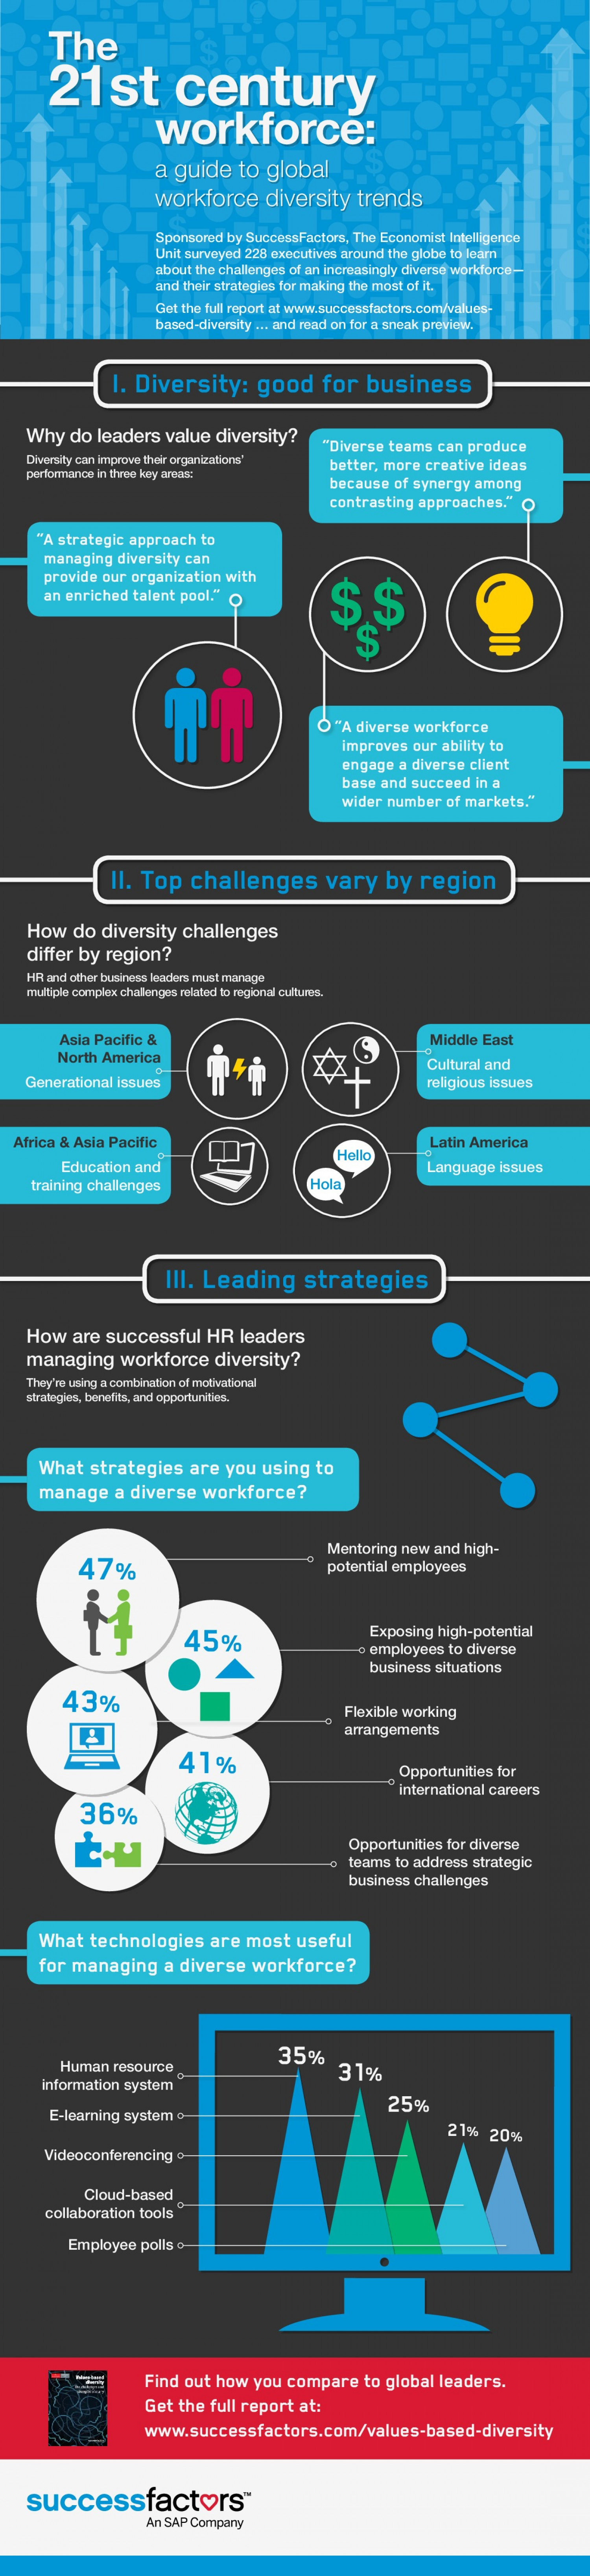 The 21st century workforce: A Guide to Global Workforce Diversity Trends  Infographic